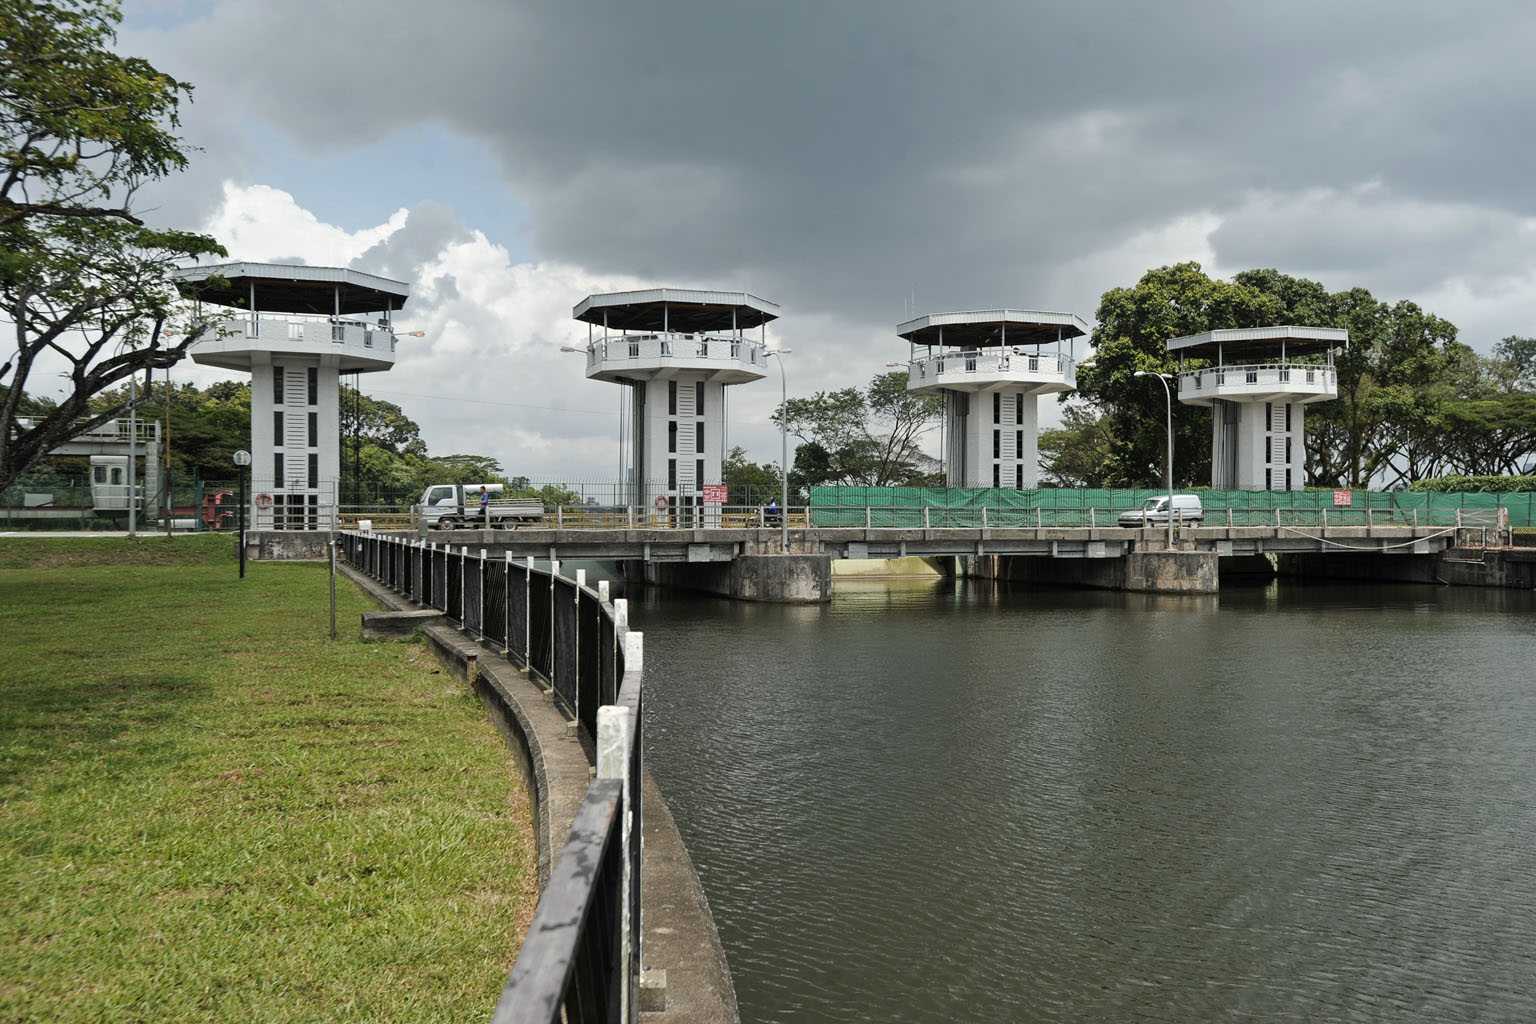 Kranji Water Reclamation Plant, one of five in Singapore designated to turn waste water into potable water, also known as Newater. Singapore aims to be self-sufficient in water by 2060, when water consumption will double from today's level. It will have to accommodate the demands of a growing domestic and non-domestic sector, mainly with Newater and desalinated water. ST FILE PHOTO